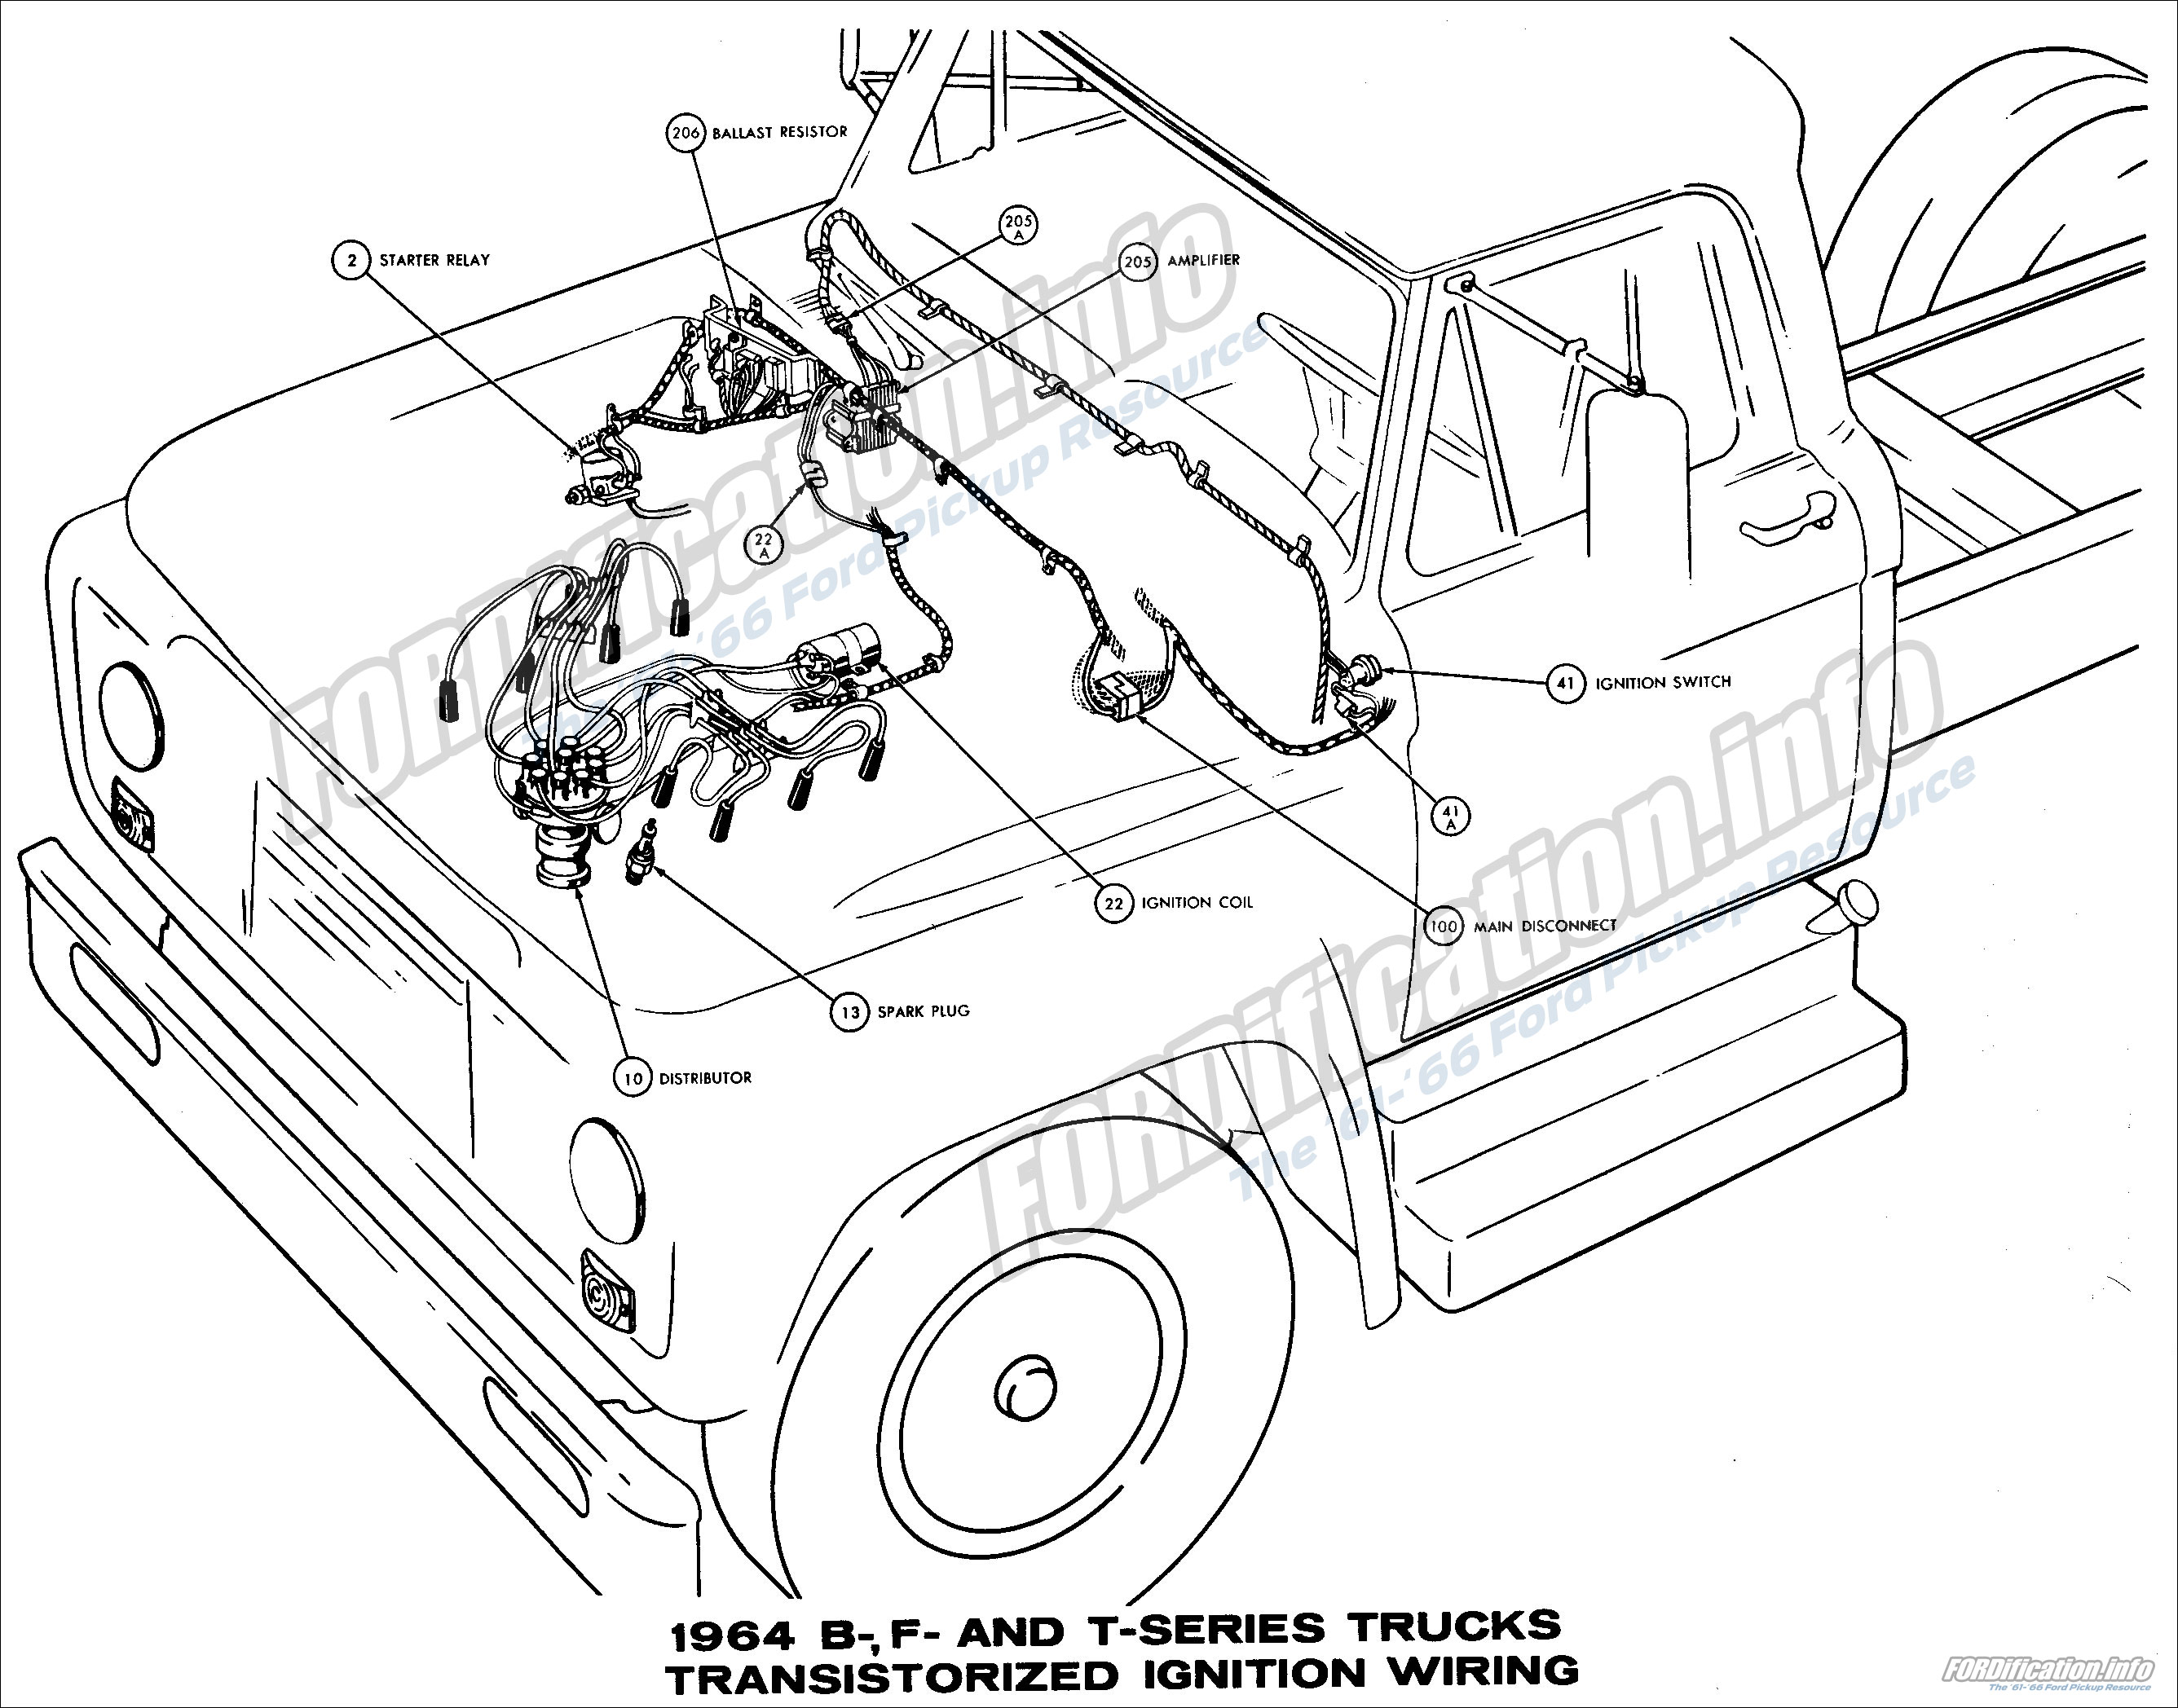 1964 Ford Truck Wiring Diagrams The 61 66 F250 Alternator Diagram B F And T Series Trucks Transistorized Ignition